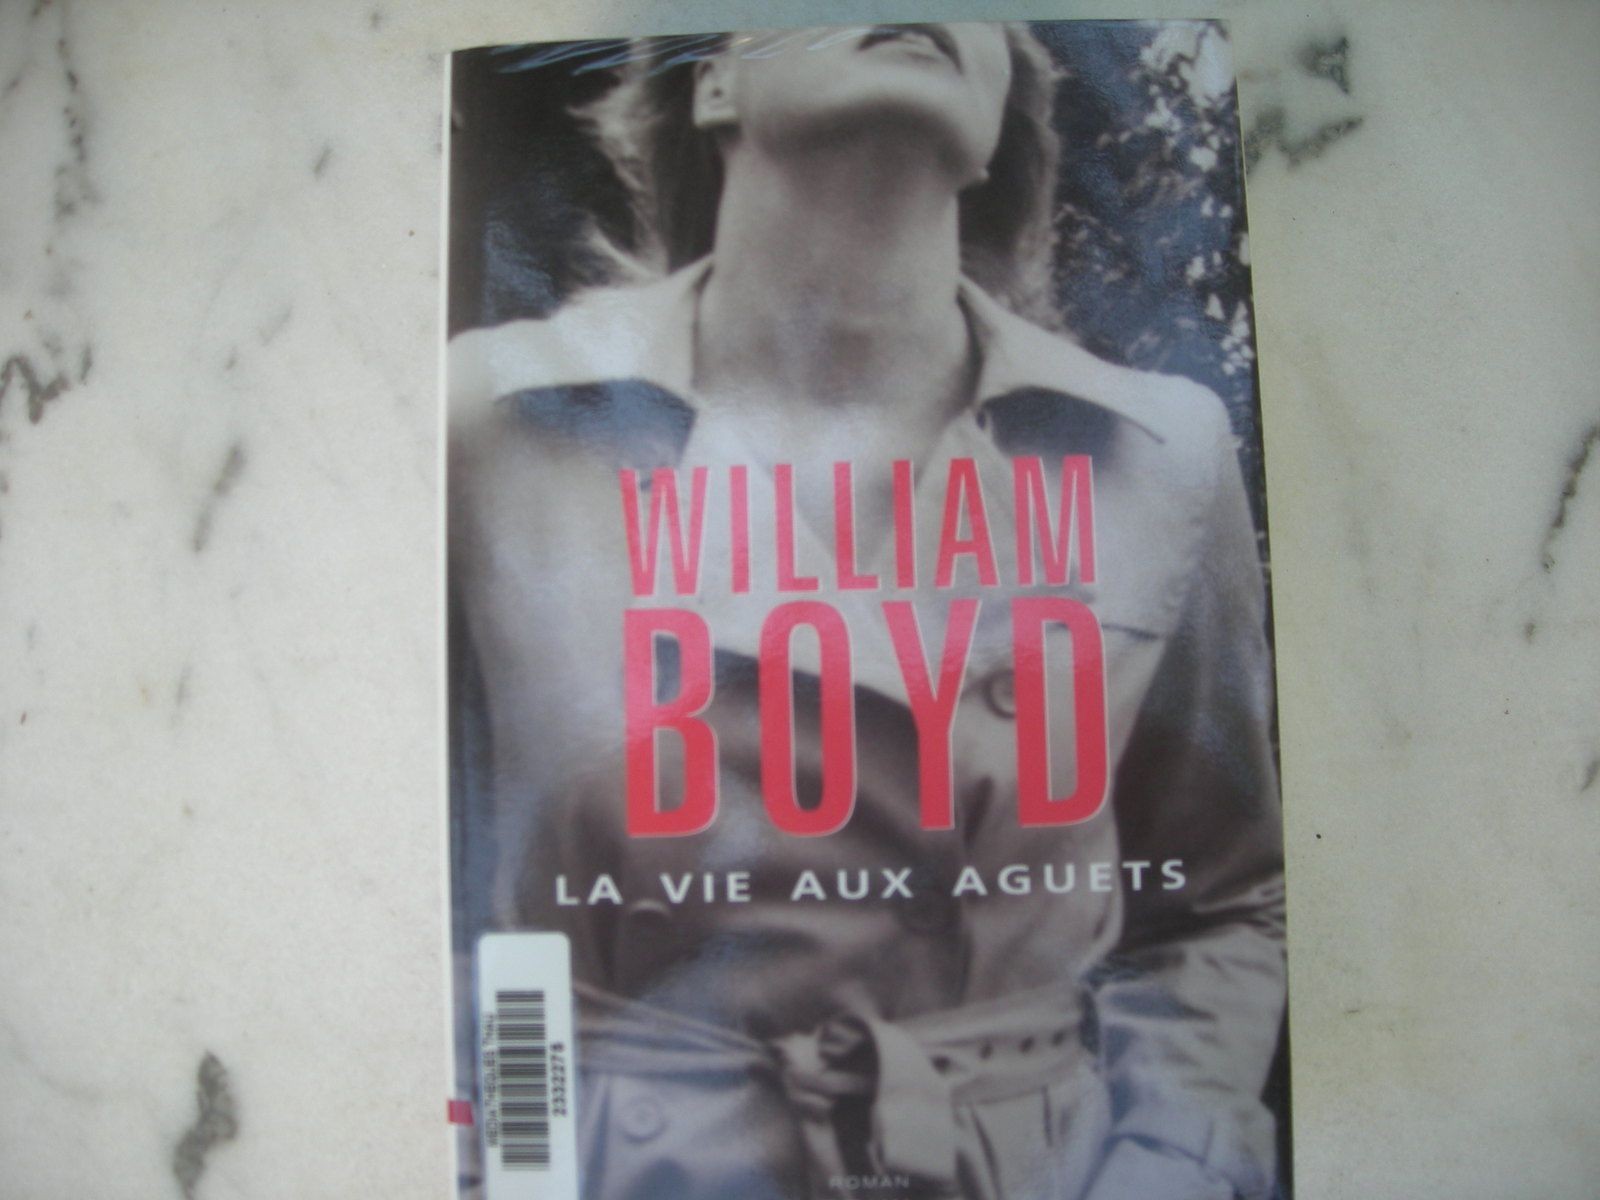 La vie aux aguets de William Boyd